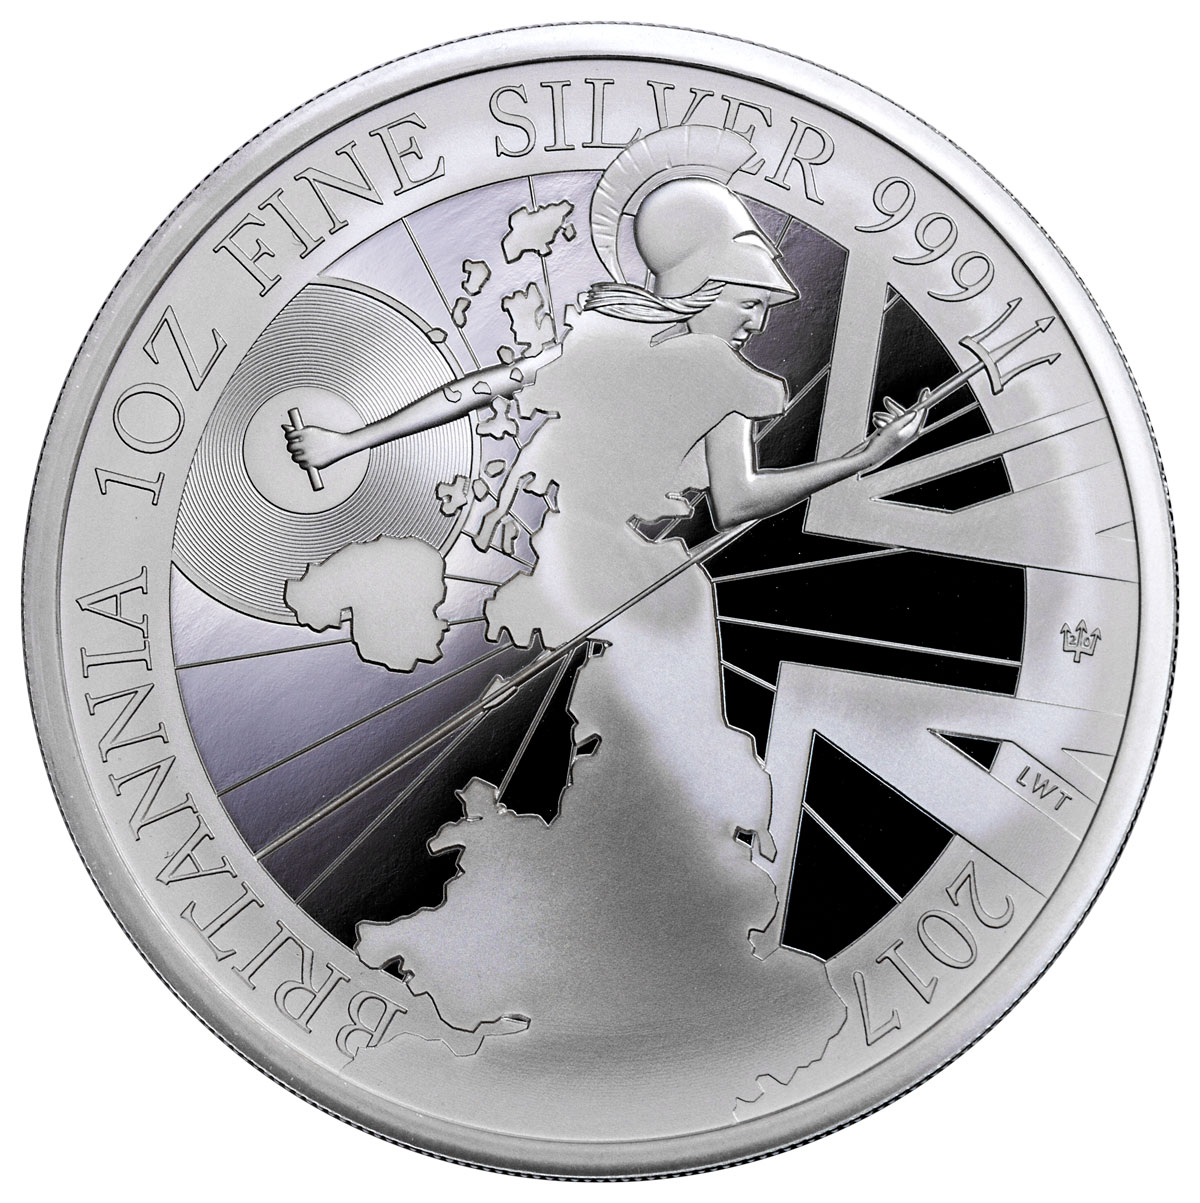 2017 Great Britain 1 Oz Silver Britannia Proof 163 2 Coin Gem